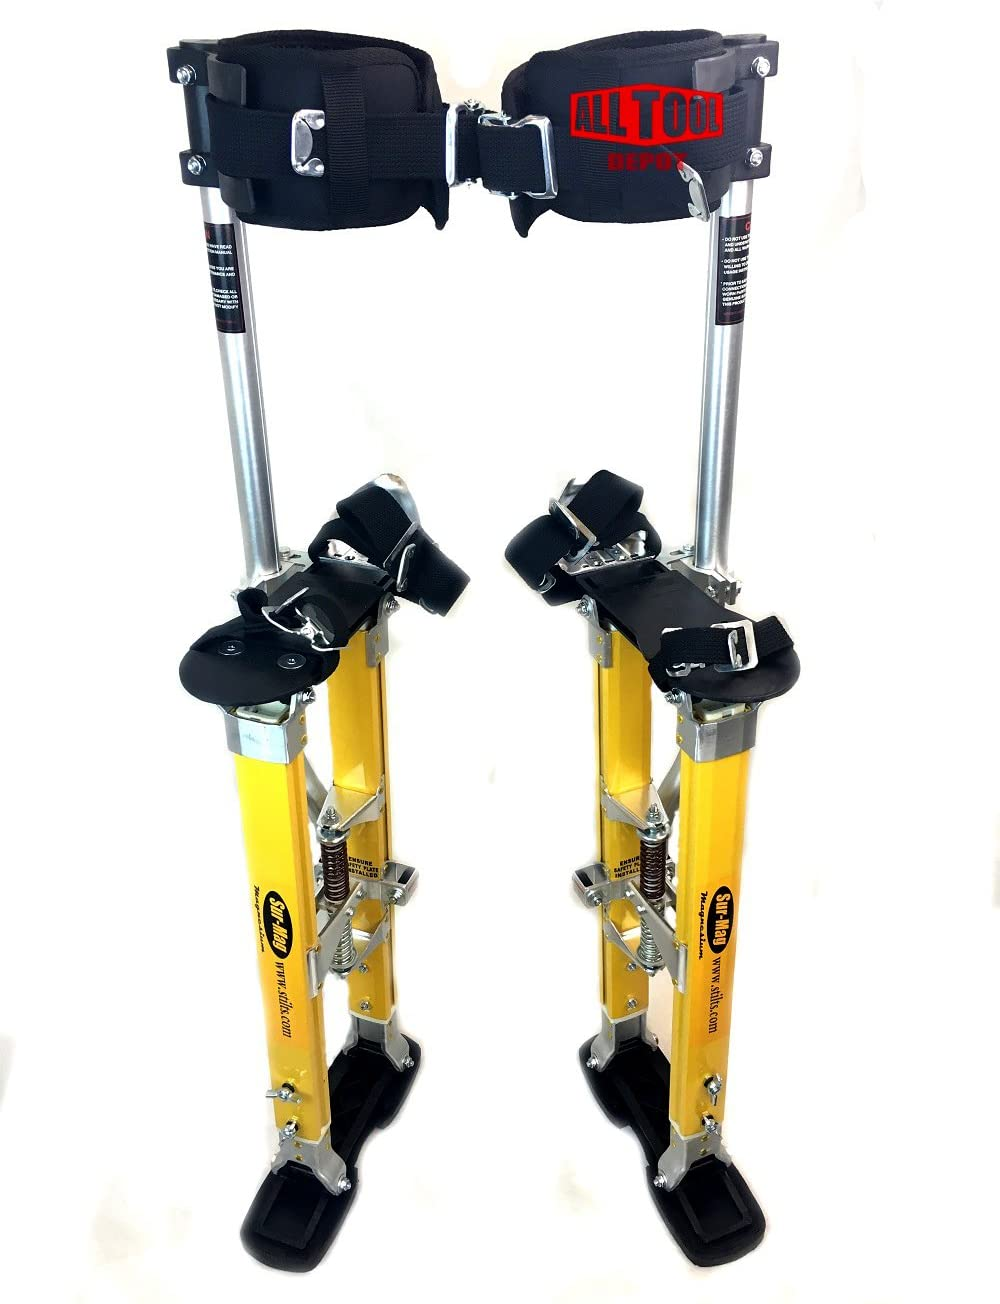 SurPro SP Quad Lock Magnesium Drywall Stilts 24-40 in. (SUR-SP-2440MP)